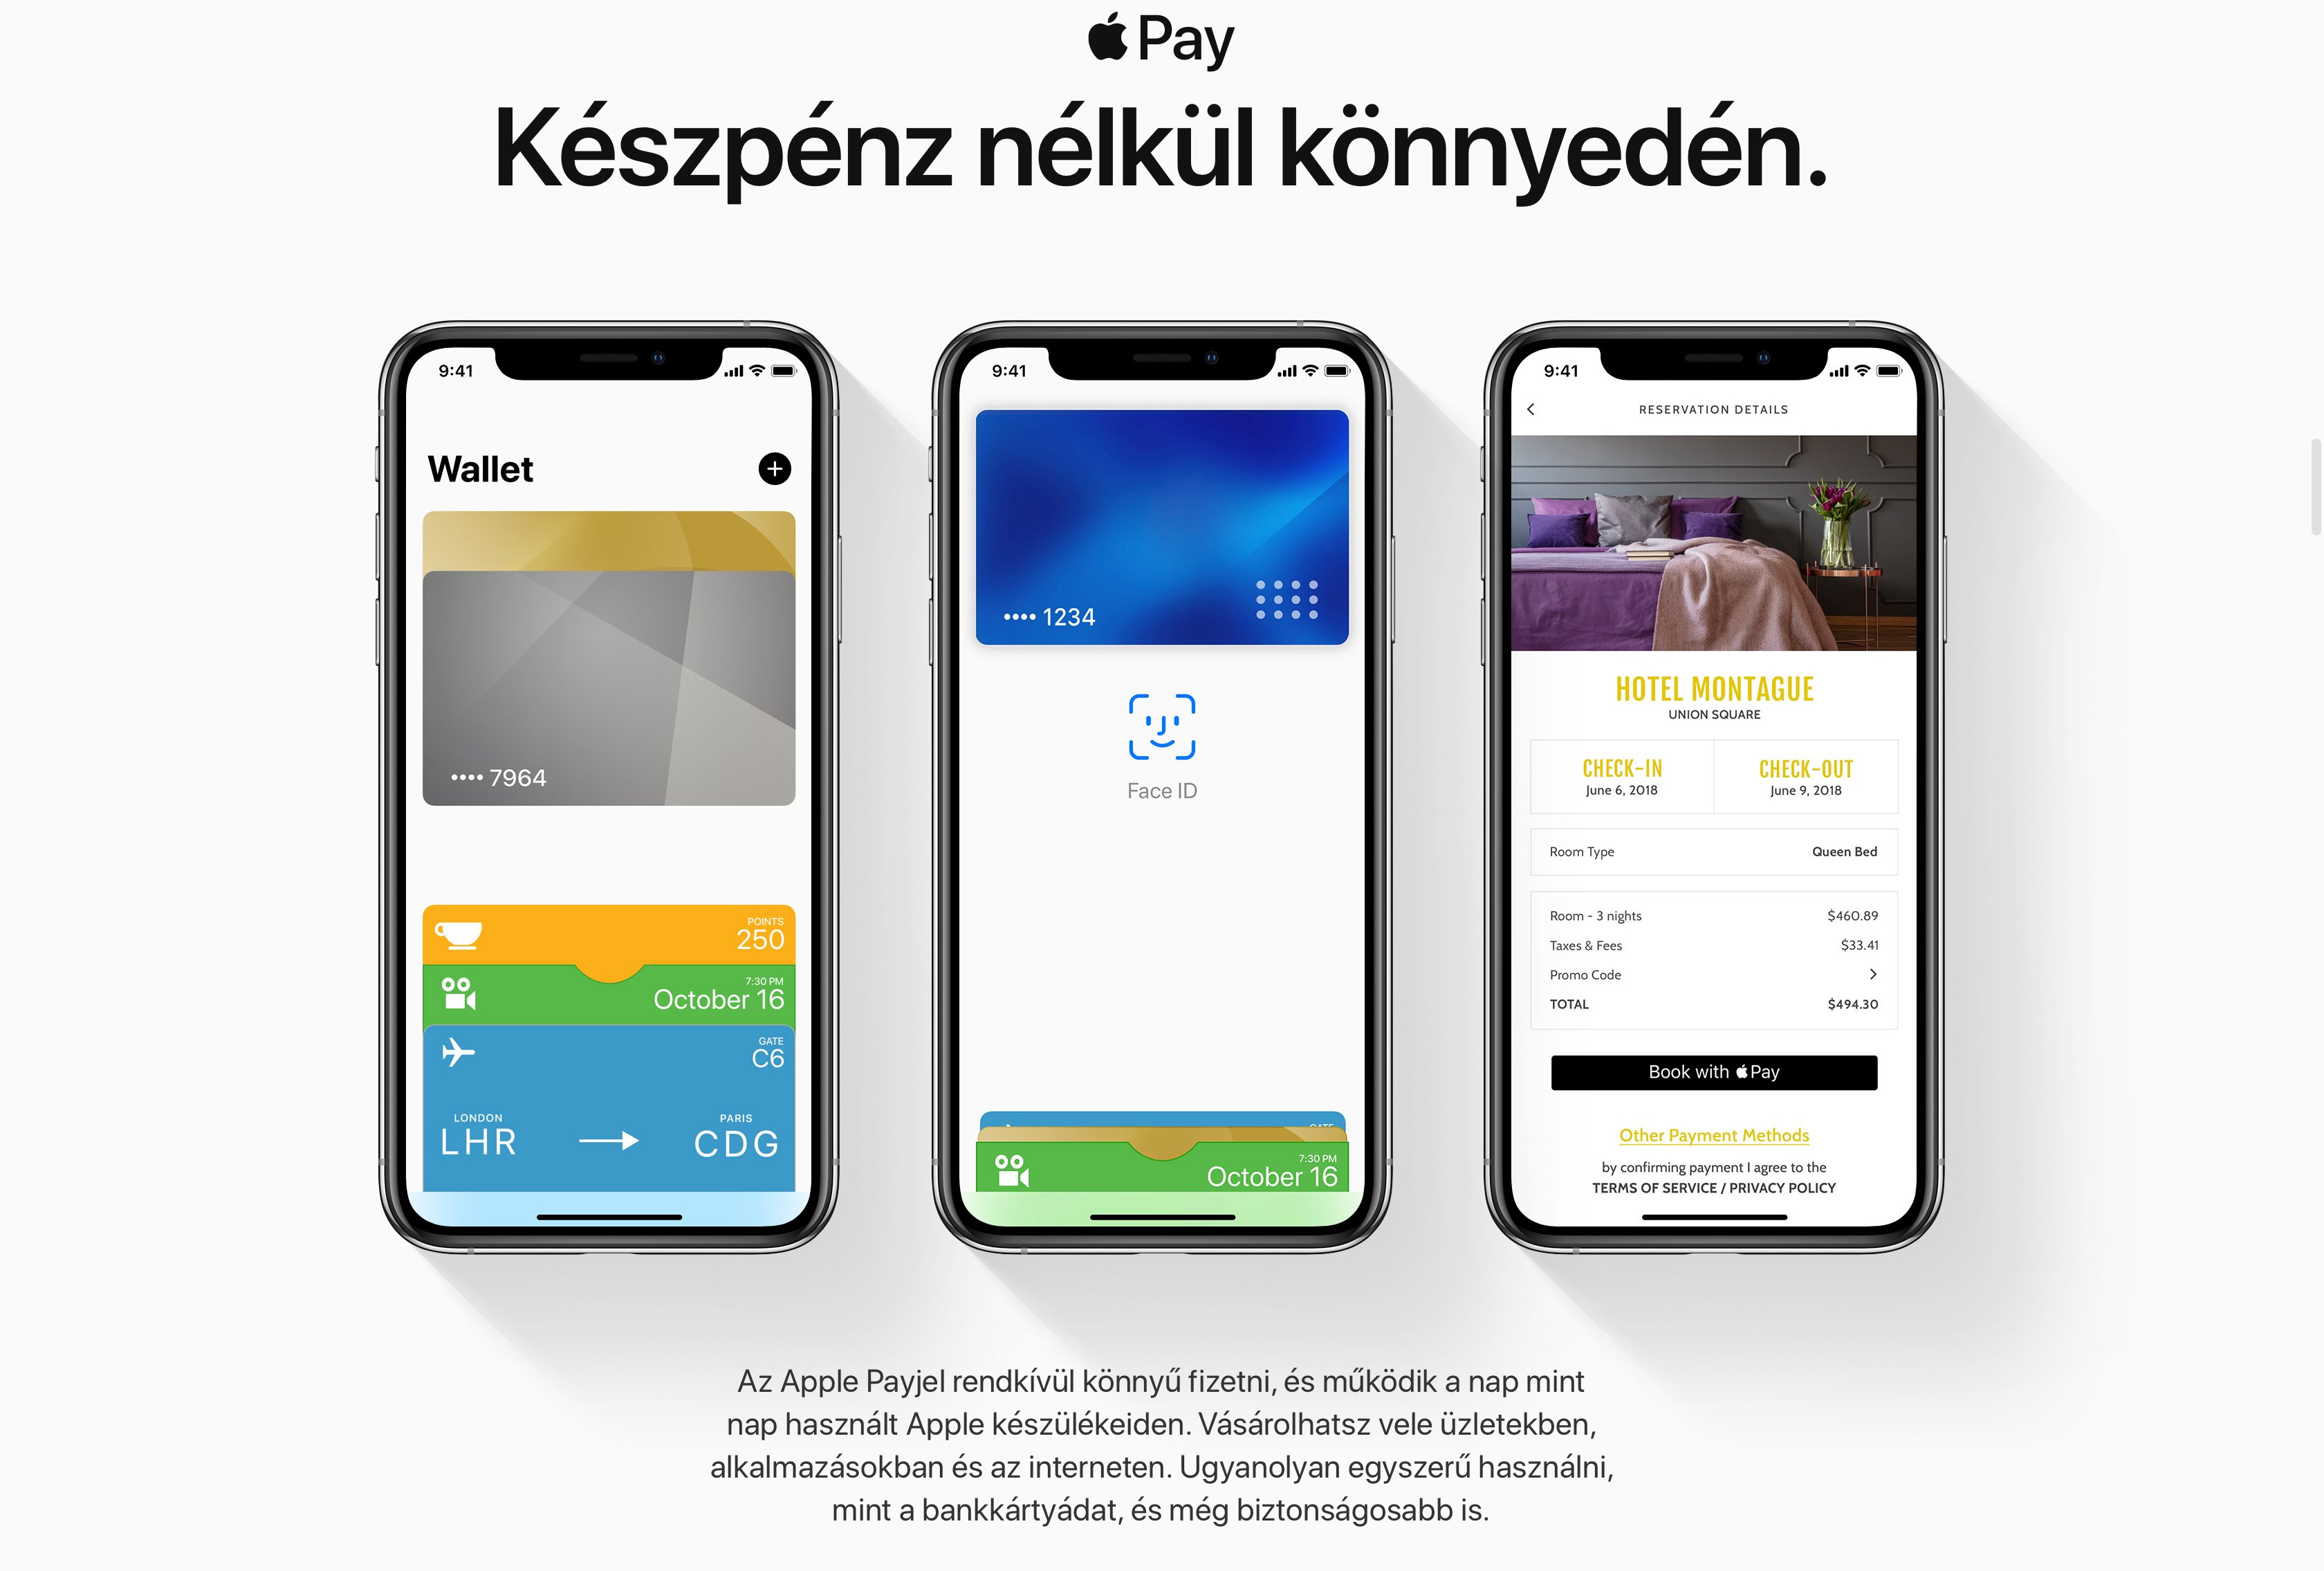 Apple Pay goes live for customers in Hungary and Luxembourg